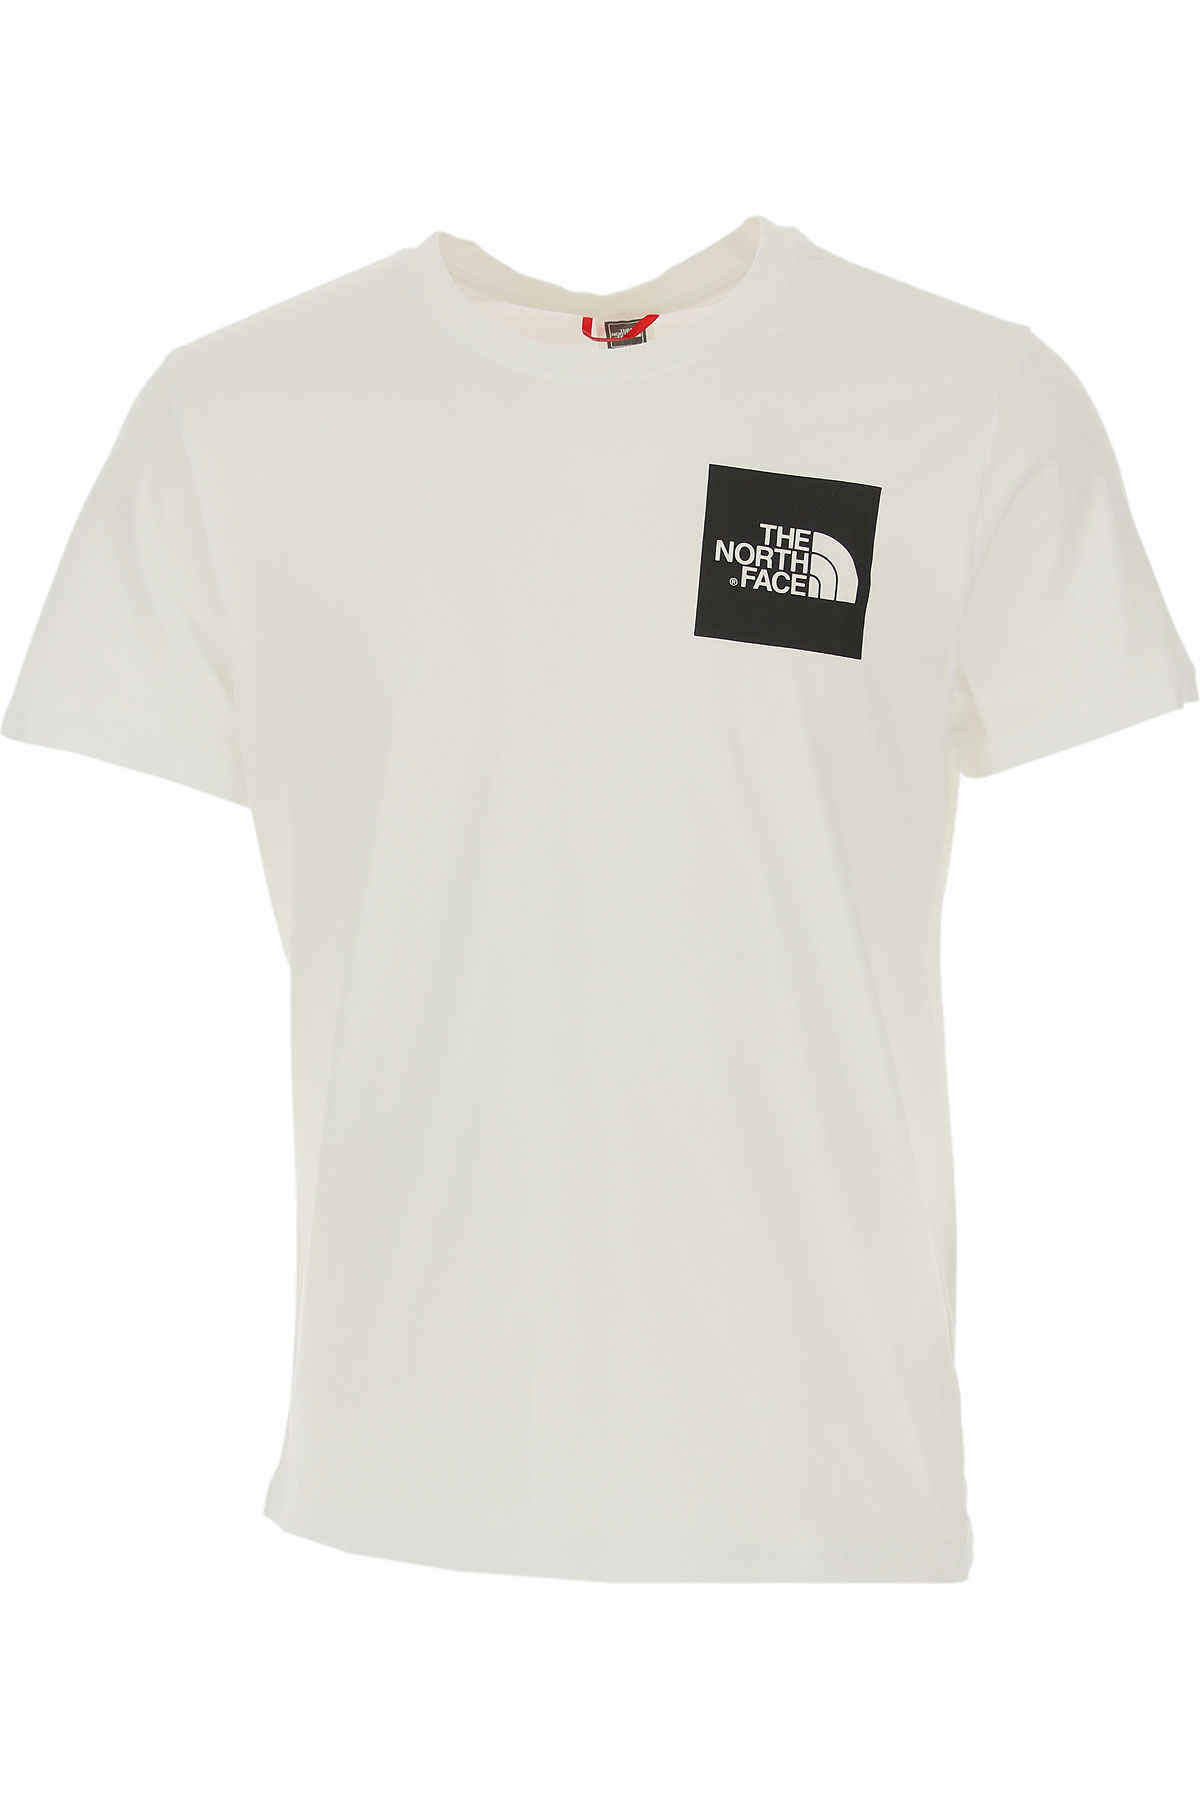 The North Face T-Shirt for Men On Sale, White, Cotton, 2019, L S